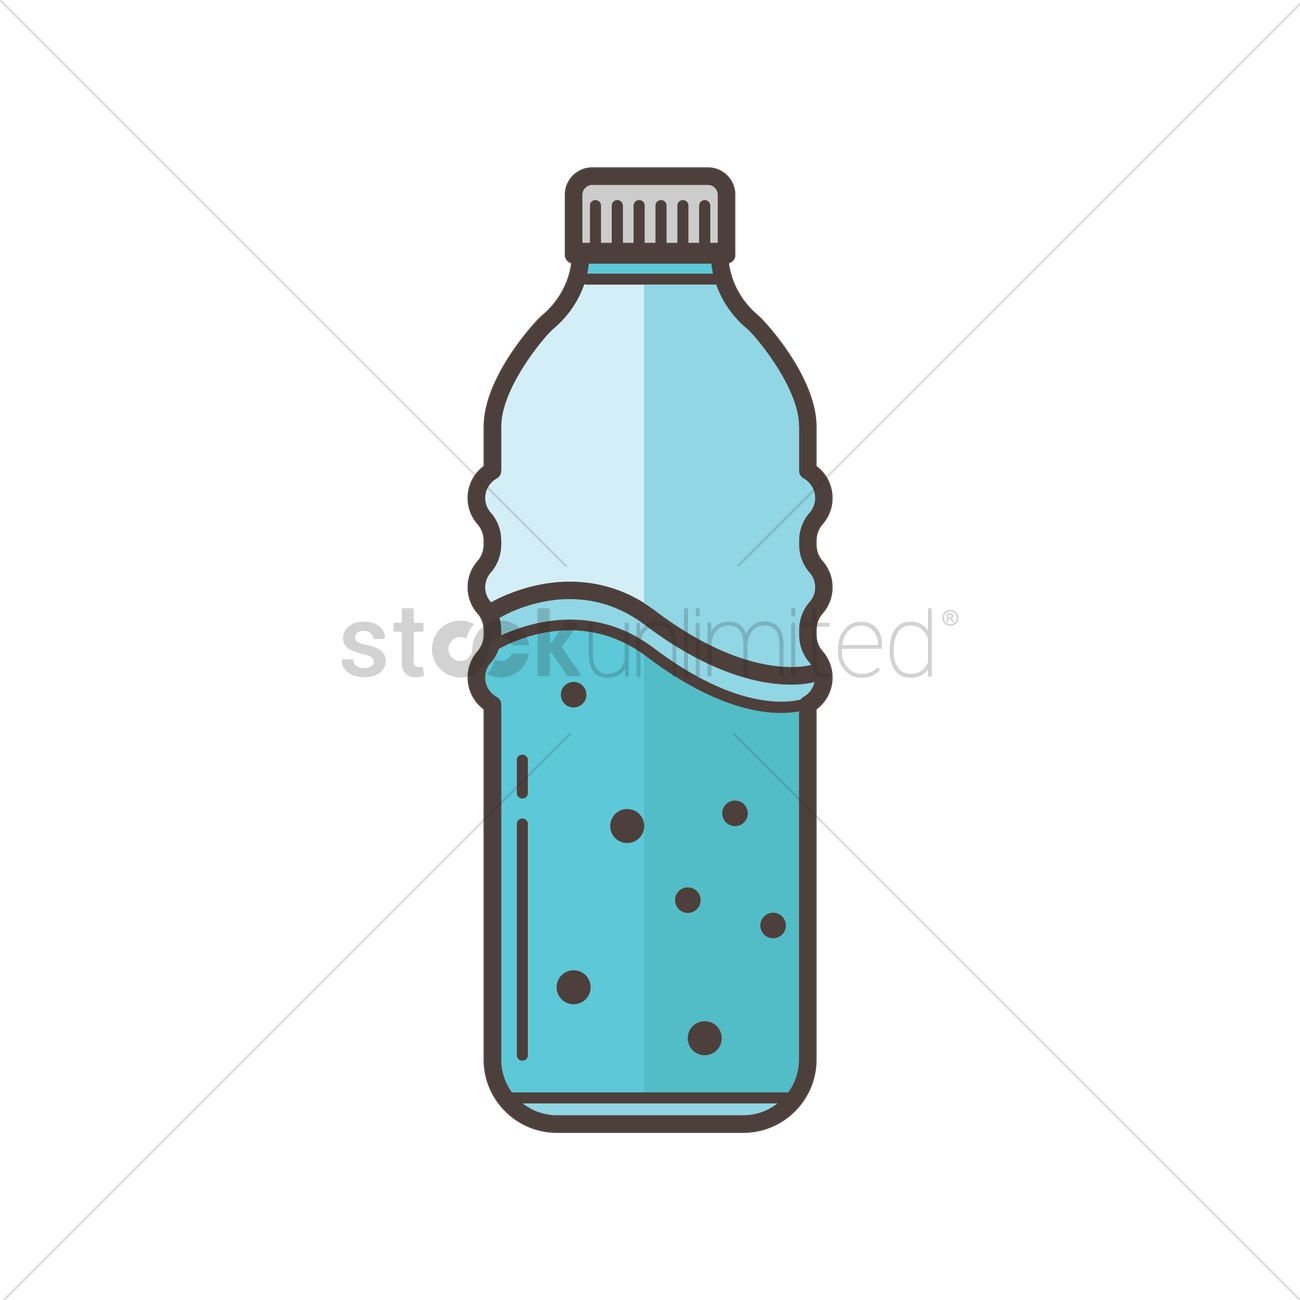 water bottle vector image 1863516 stockunlimited rh stockunlimited com